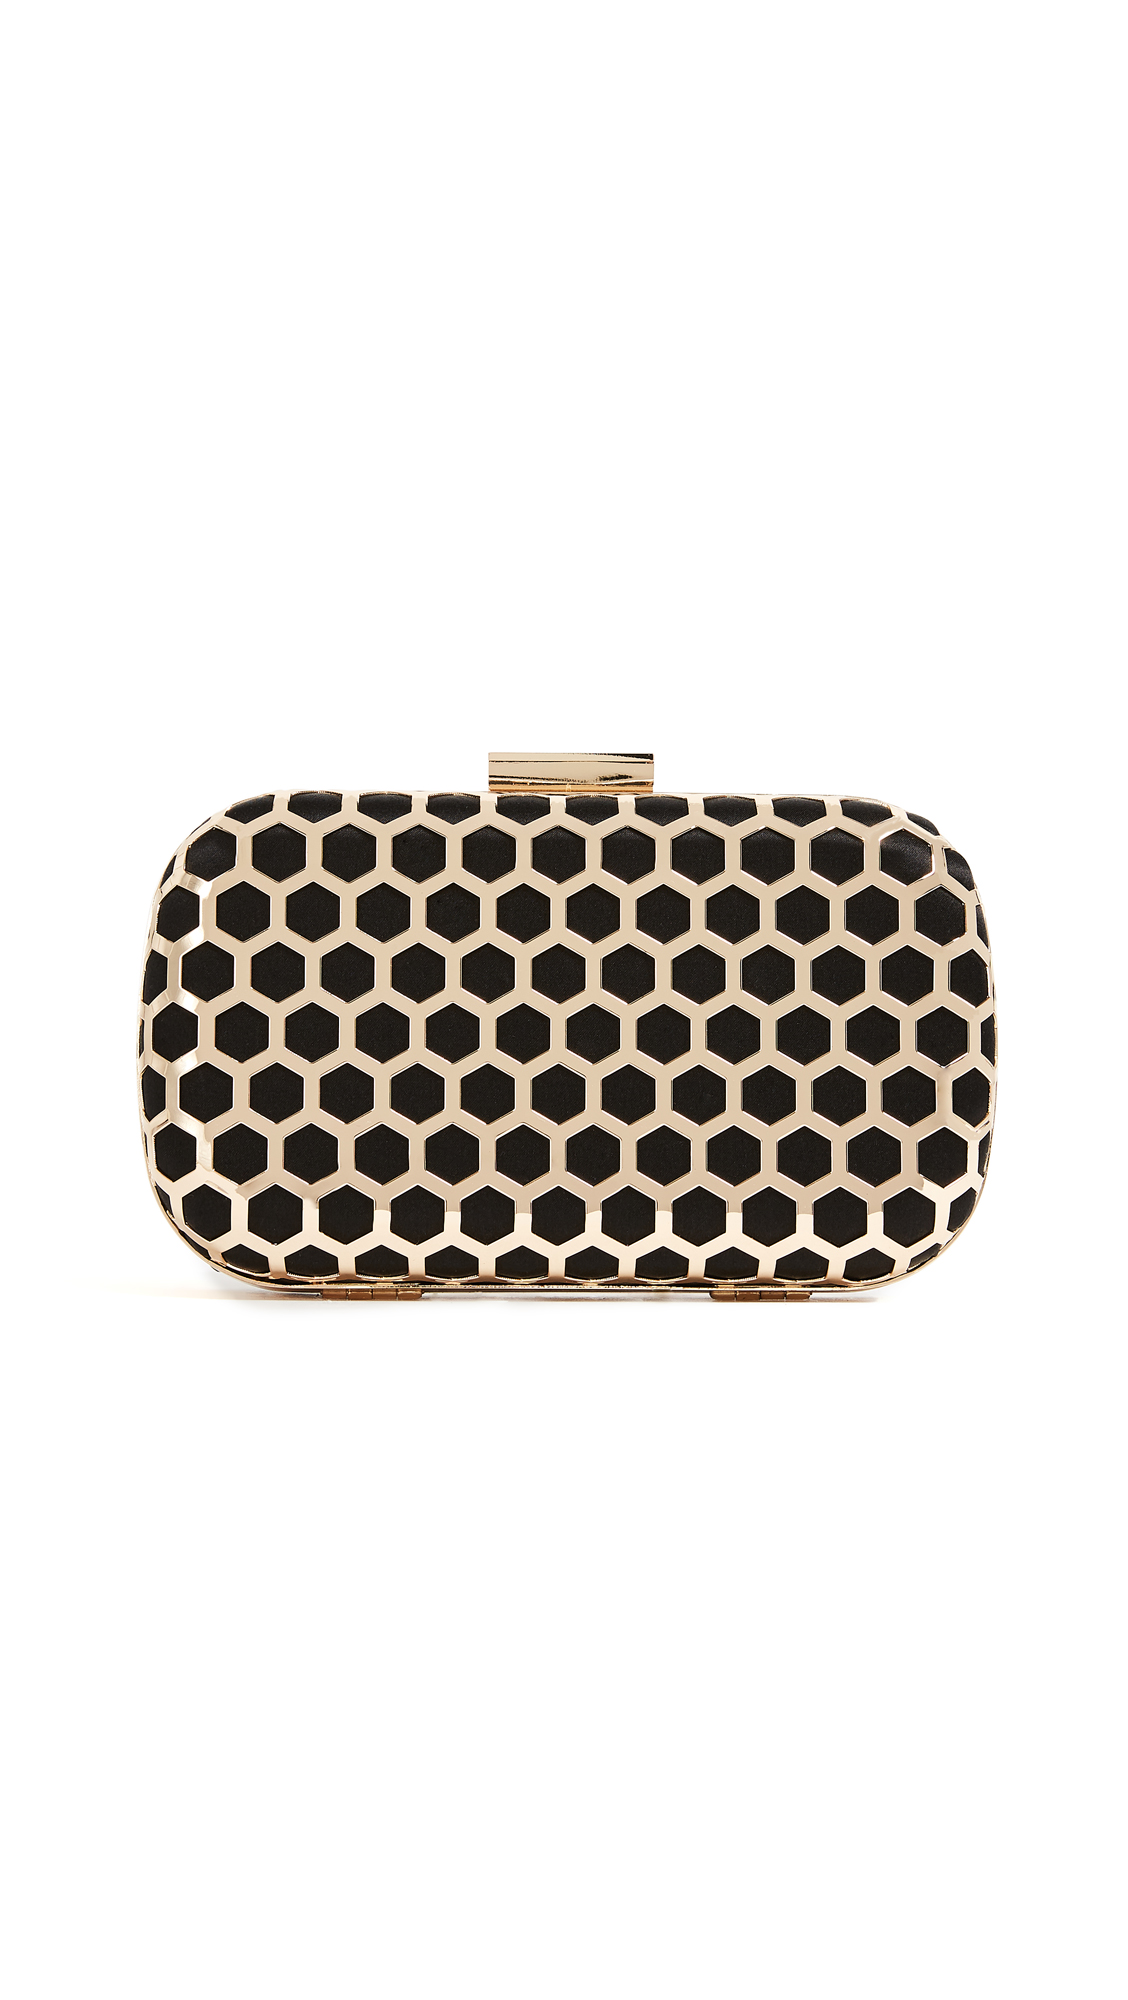 Inge Christopher Palermo Clutch - Black